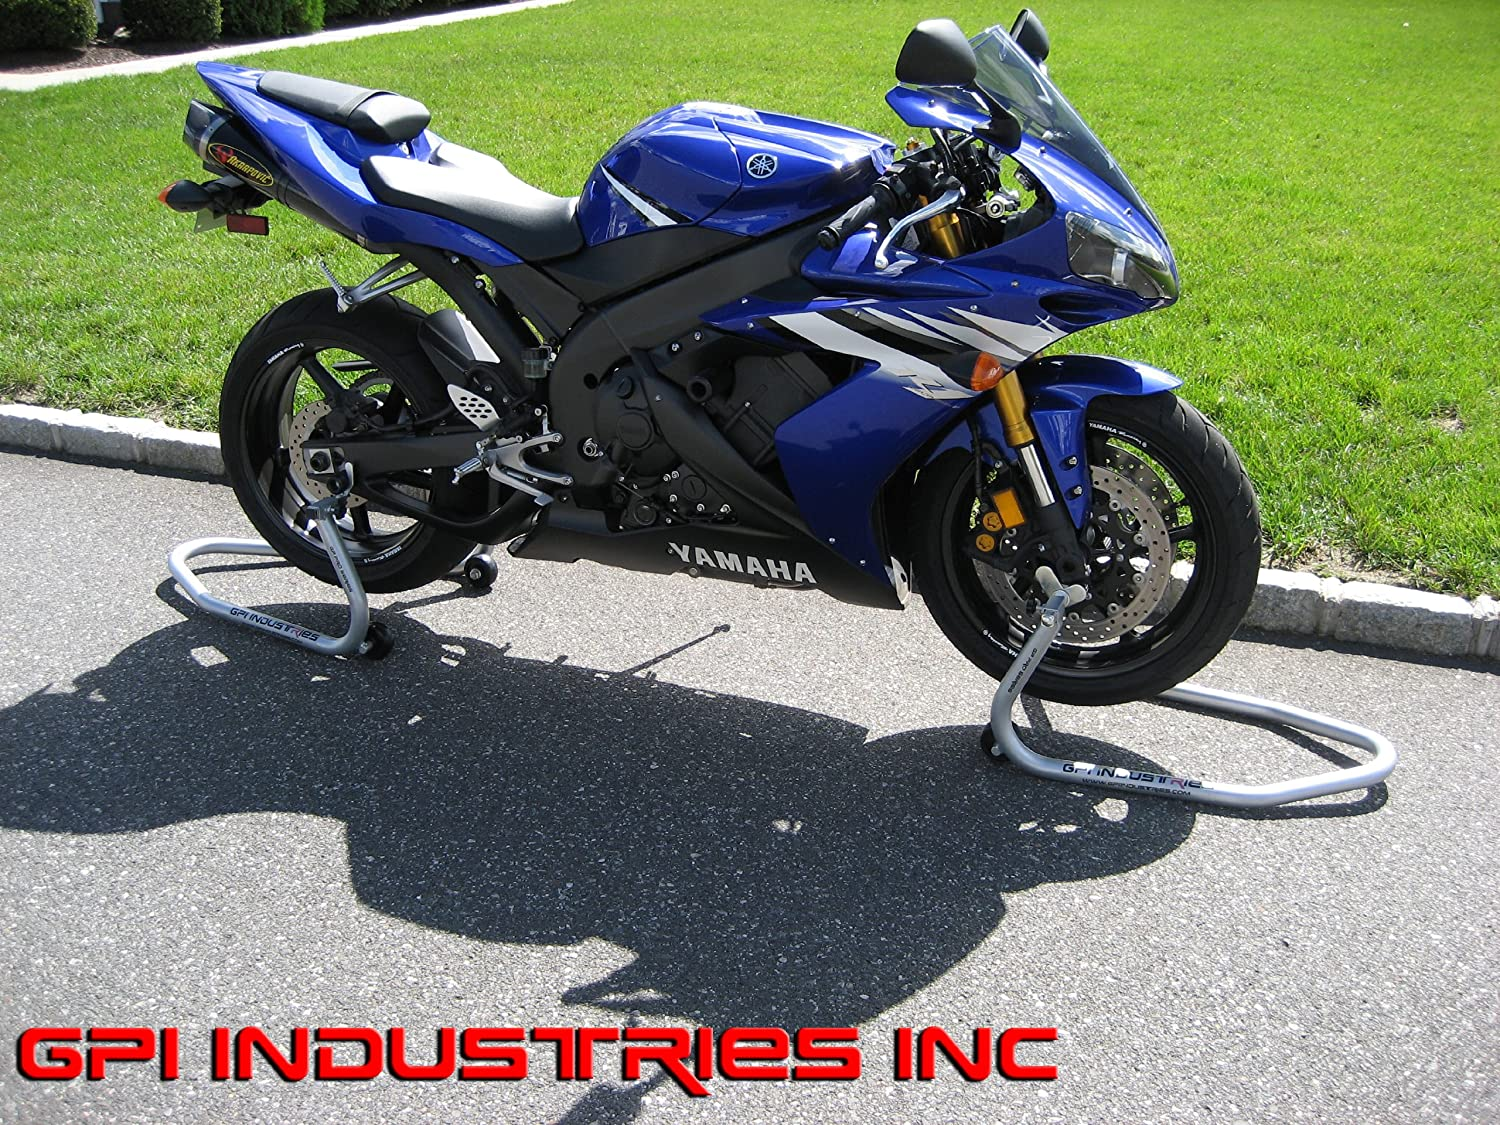 Yamaha YZF R1 R1s R1m R6 R6s R3 FZ1 FZ6 FZ9 FZ09 FZ10 FZ07 MT07 MT09 MT10 GP Pro Series Universal Front and Rear Motorcycle Sportbike Paddock Race Stands Lifts by GPI Industries